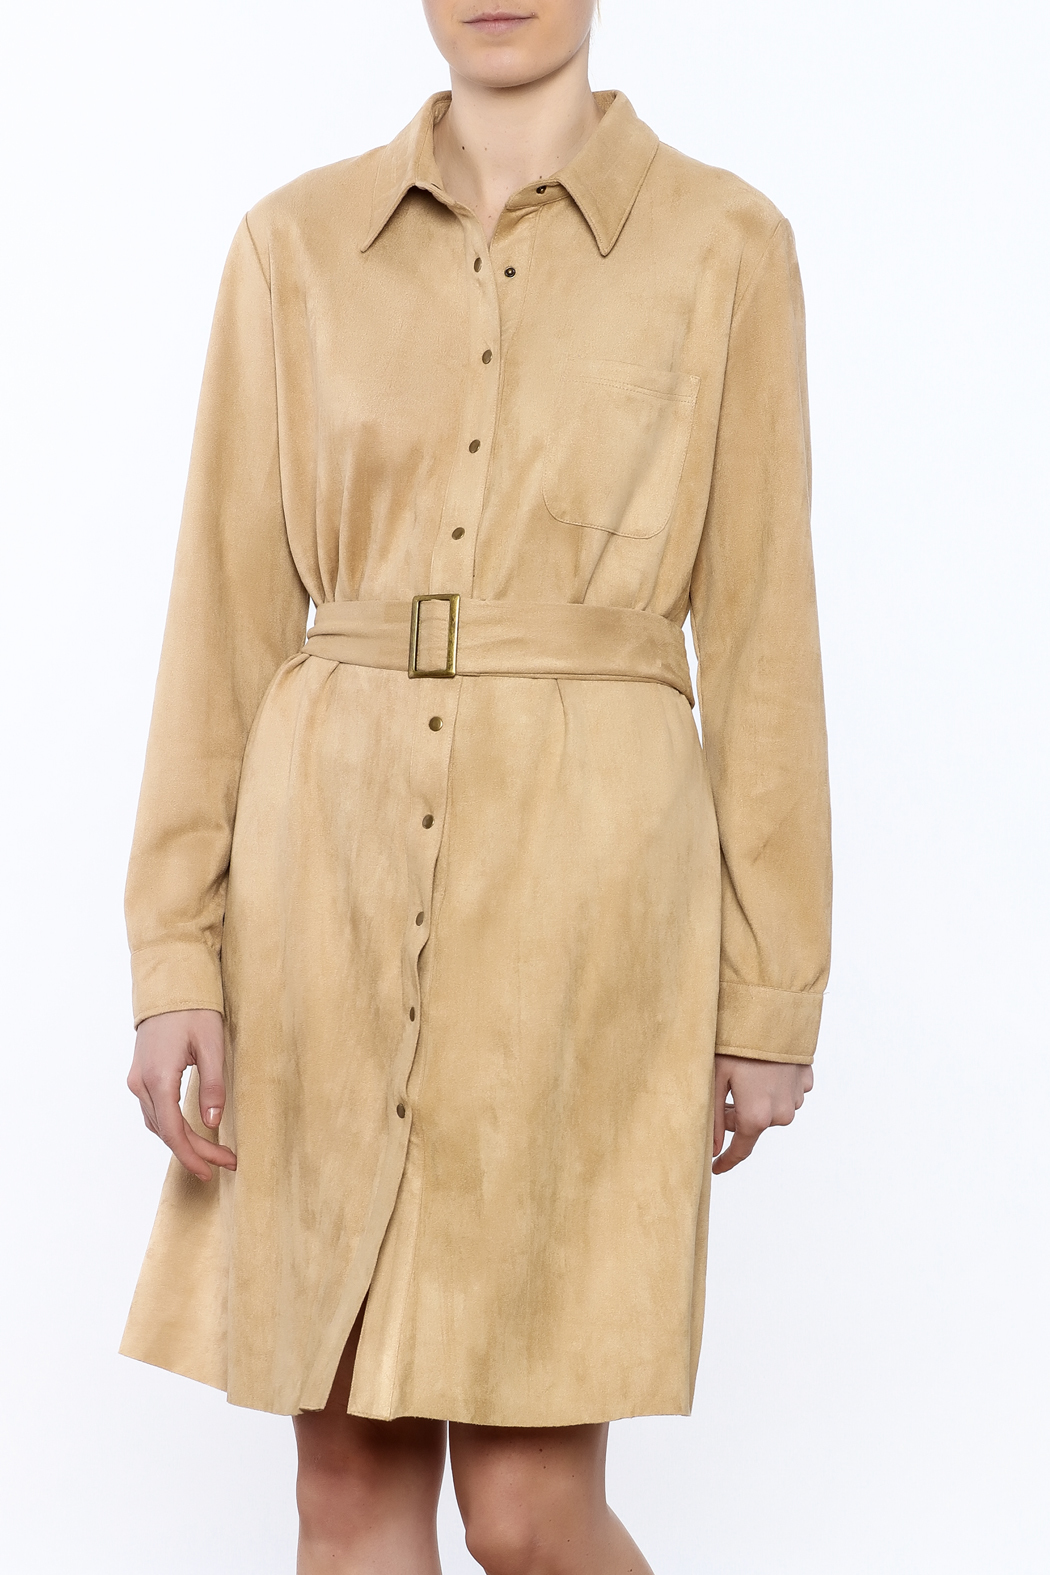 JOH Faux Suede Button-Down Dress - Front Cropped Image